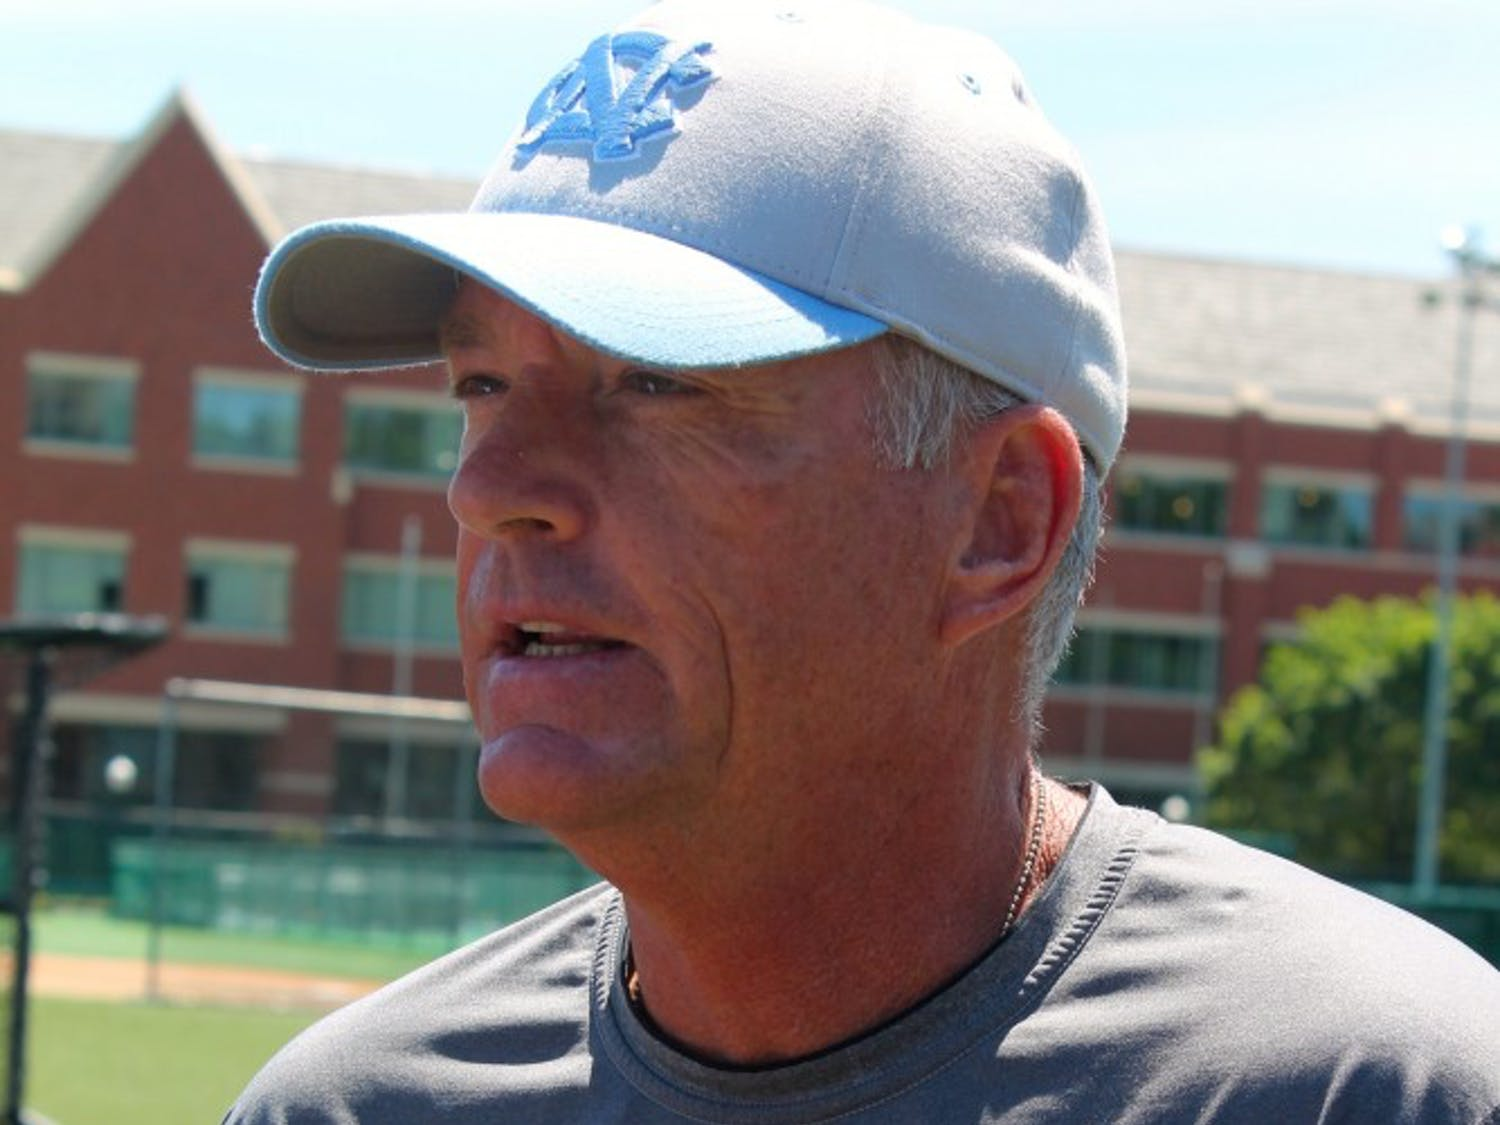 Coach Mike Fox addresses the media after Monday afternoon's practice at Creighton's field.